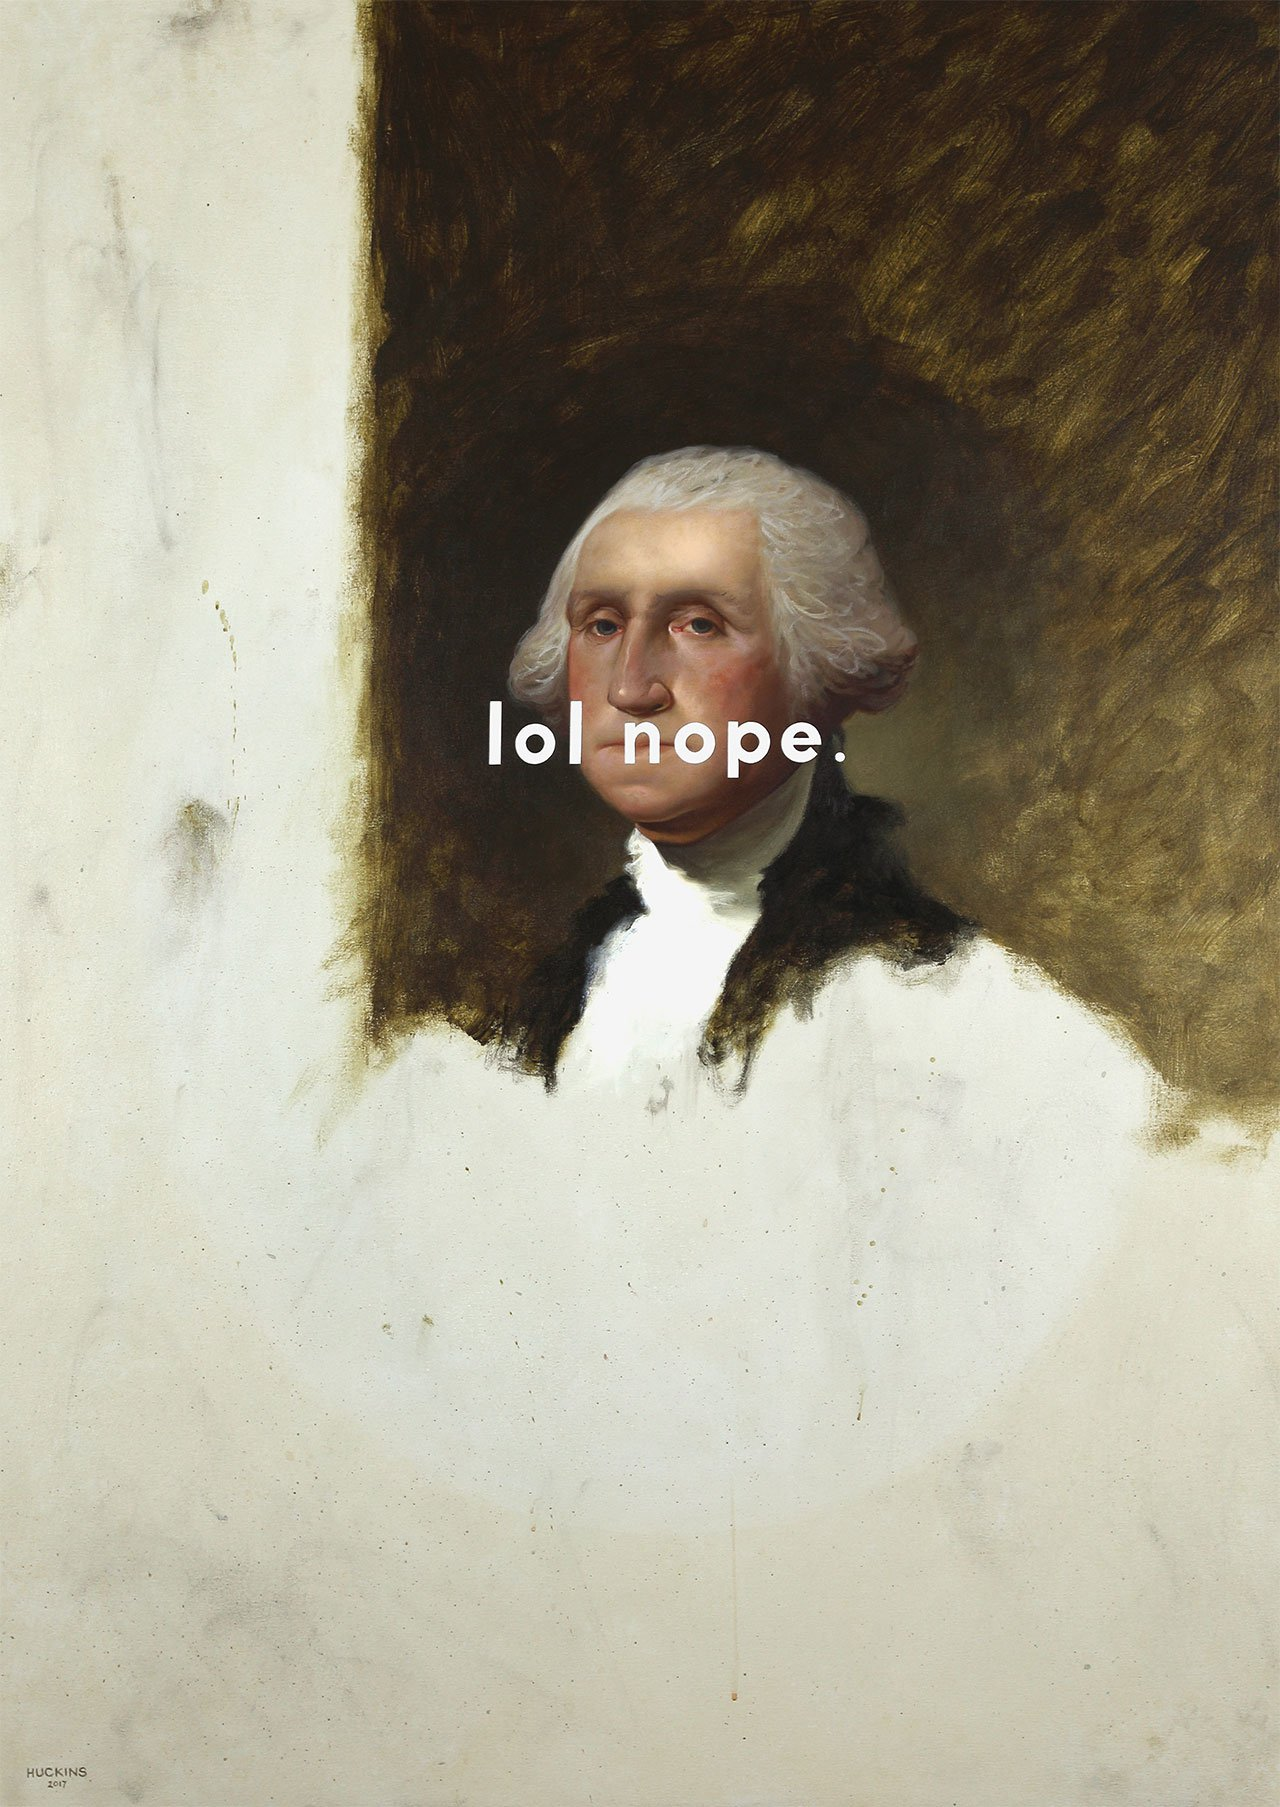 Shawn Huckins2.jpg